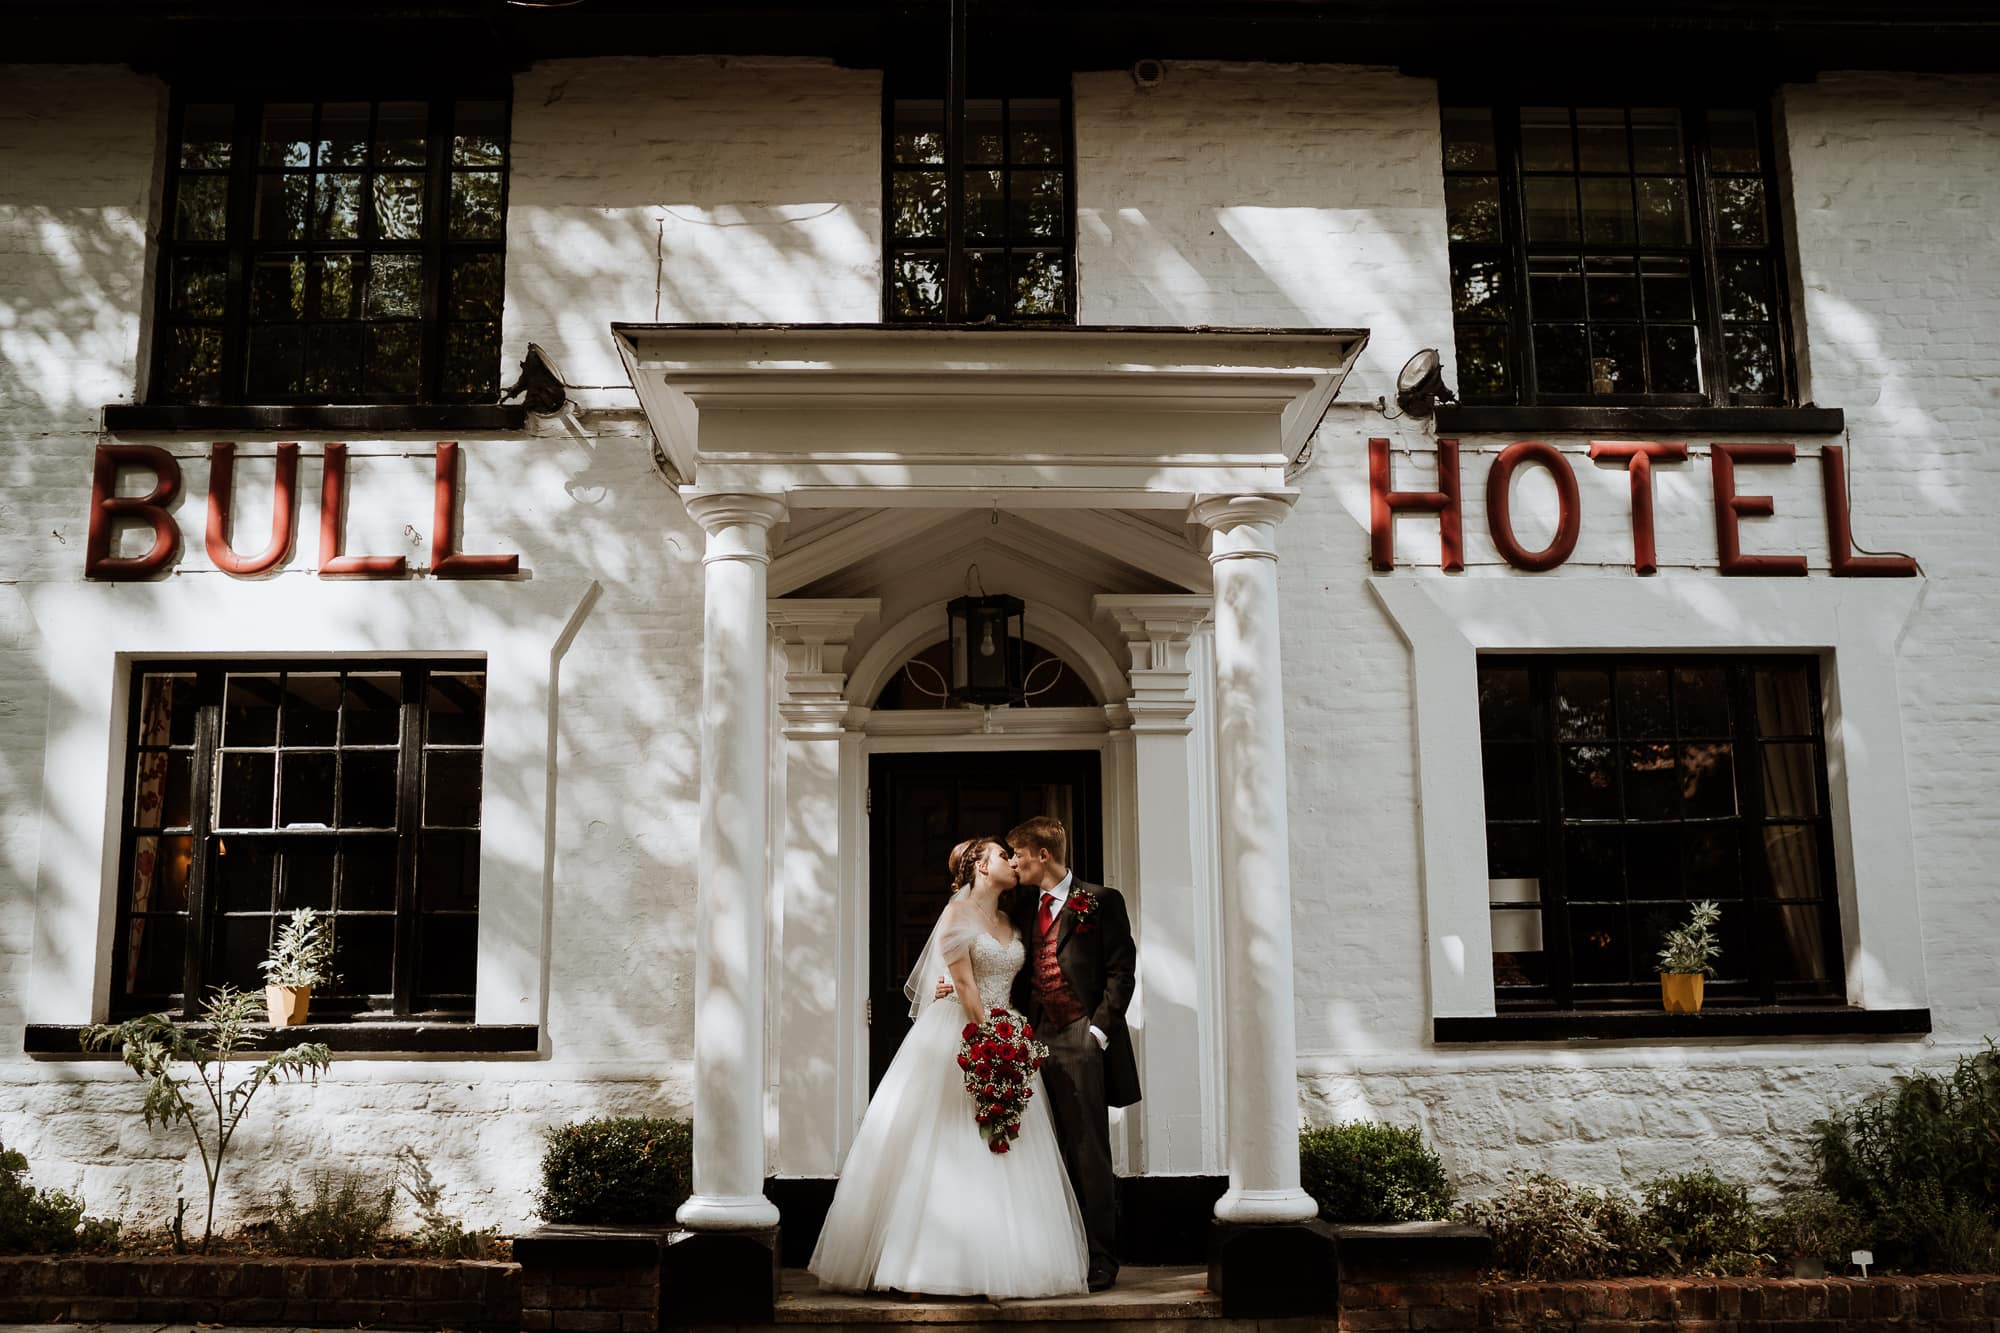 Bride and Groom kissing in the doorway of the Bull Hotel in Wrotham